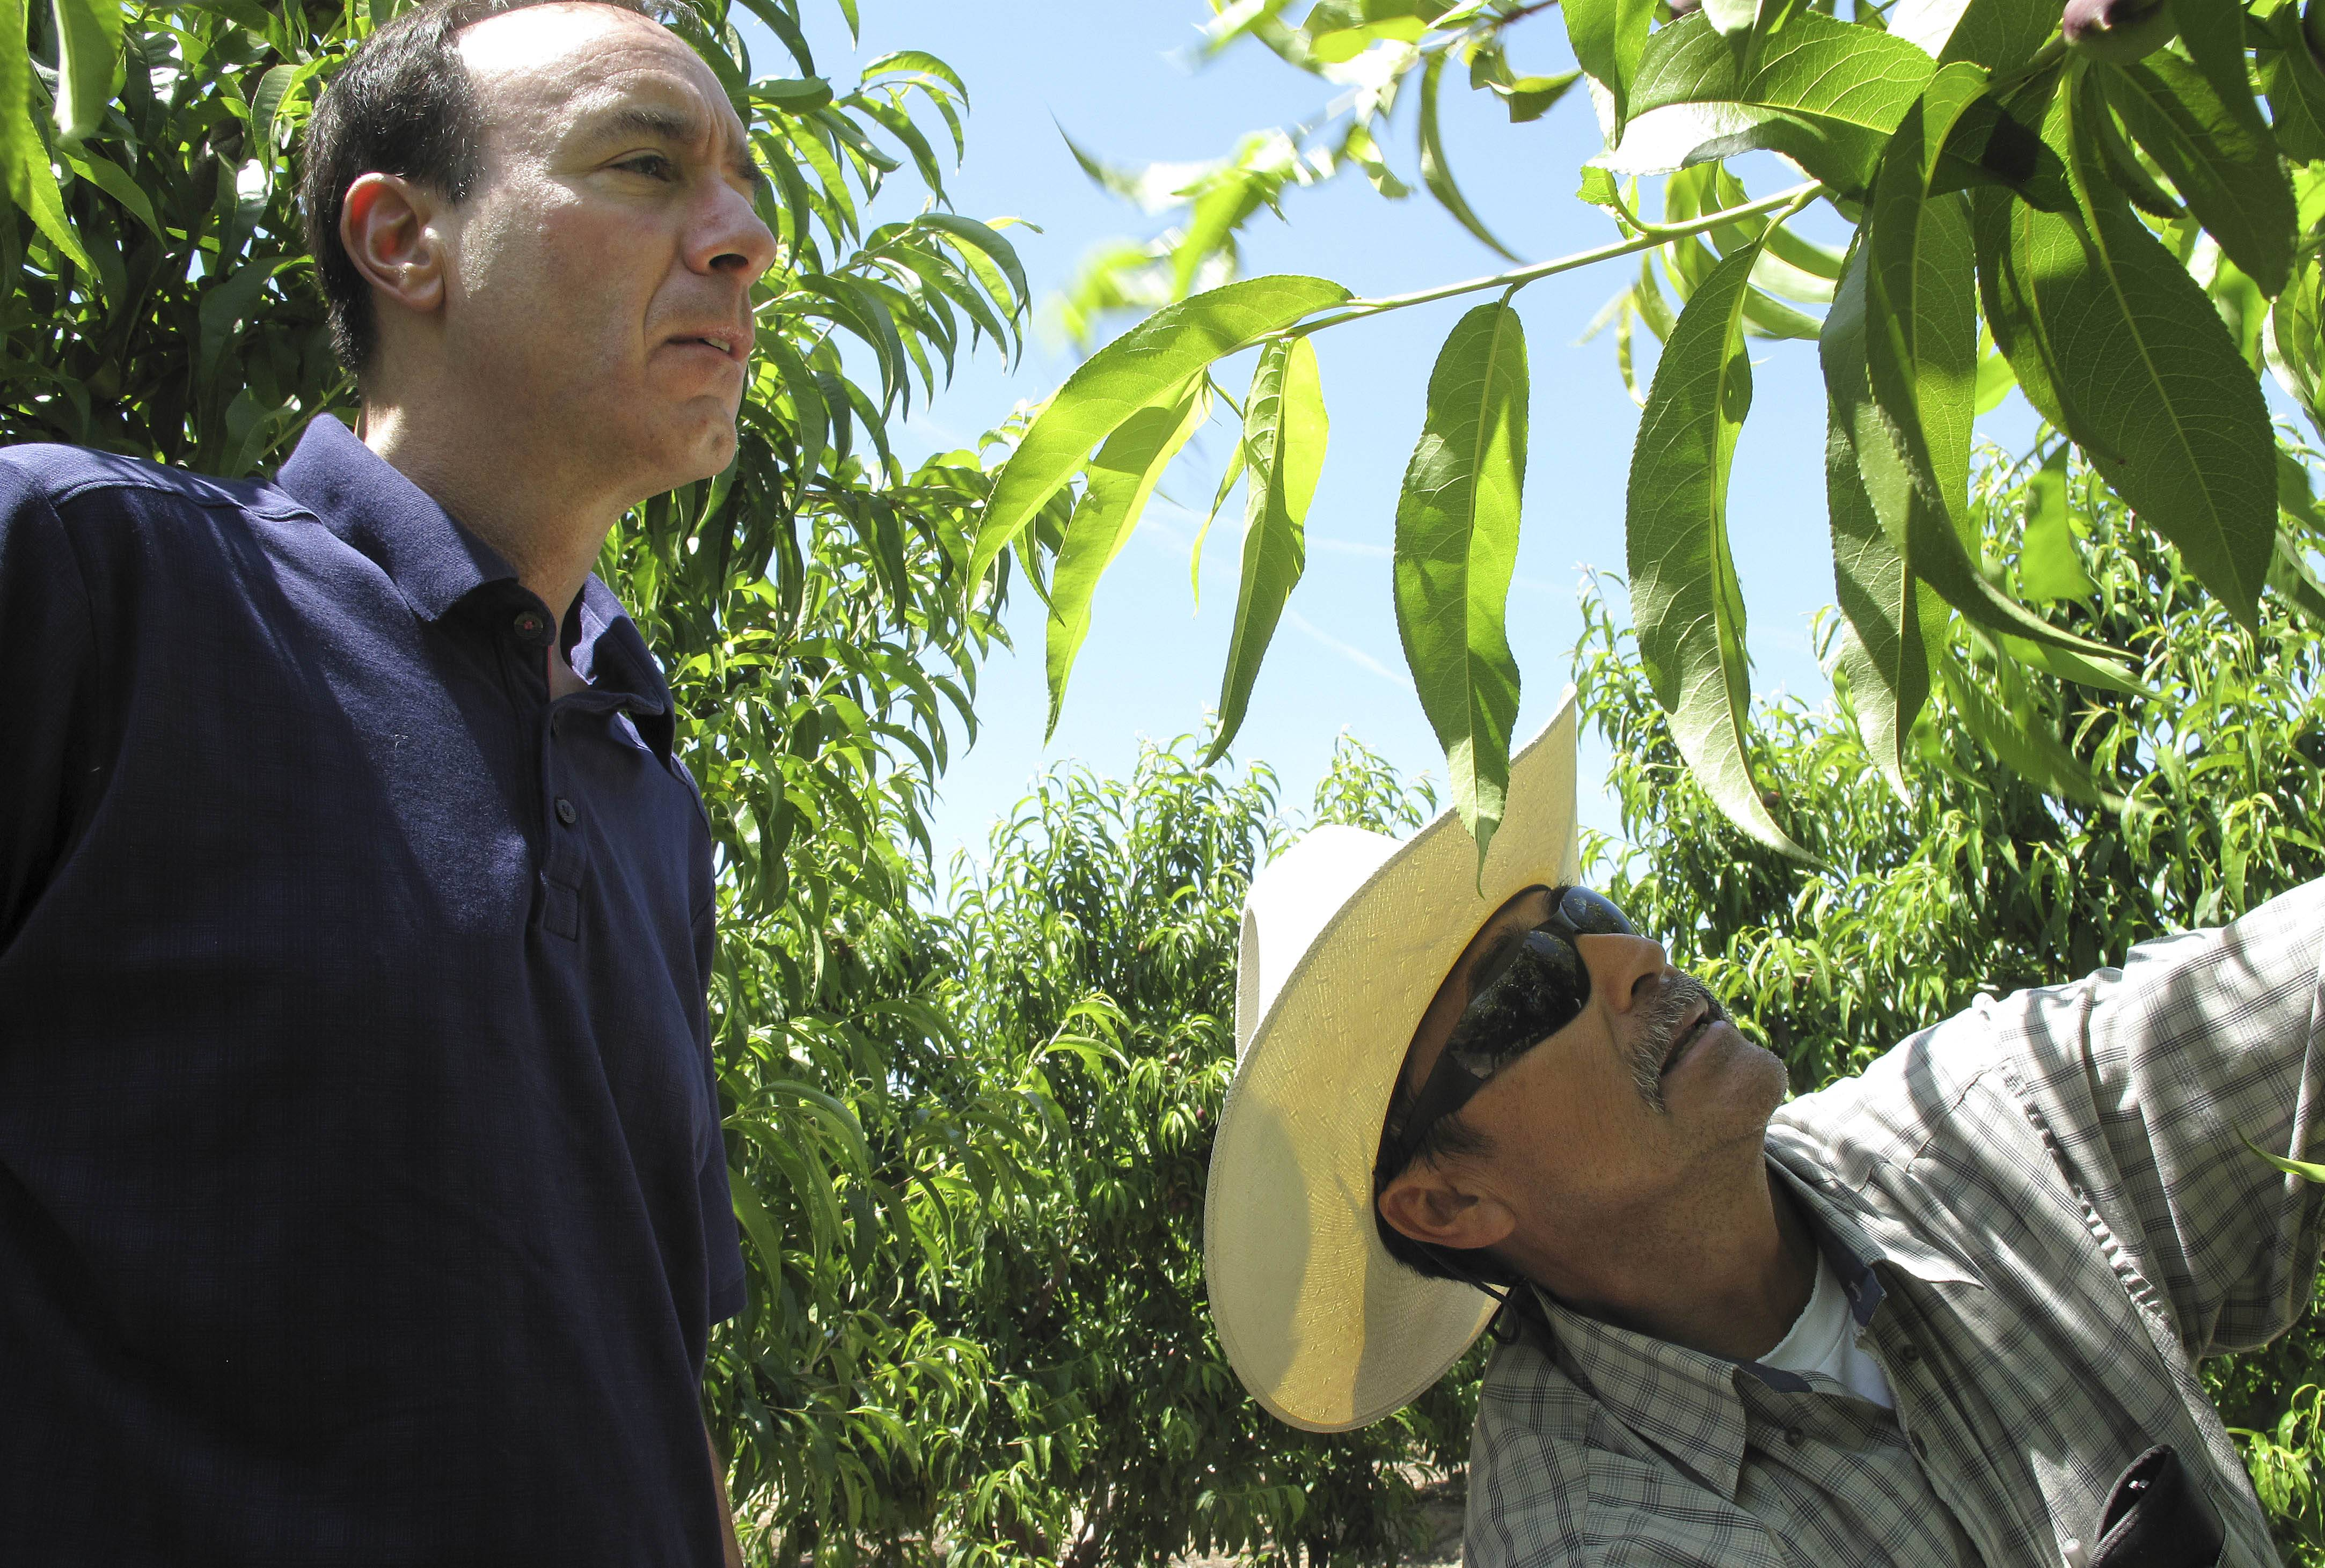 Dan Gerawan, owner of at Gerawan Farming, Inc., left, talks with crew boss Jose Cabello in a nectarine orchard near Sanger, Calif.